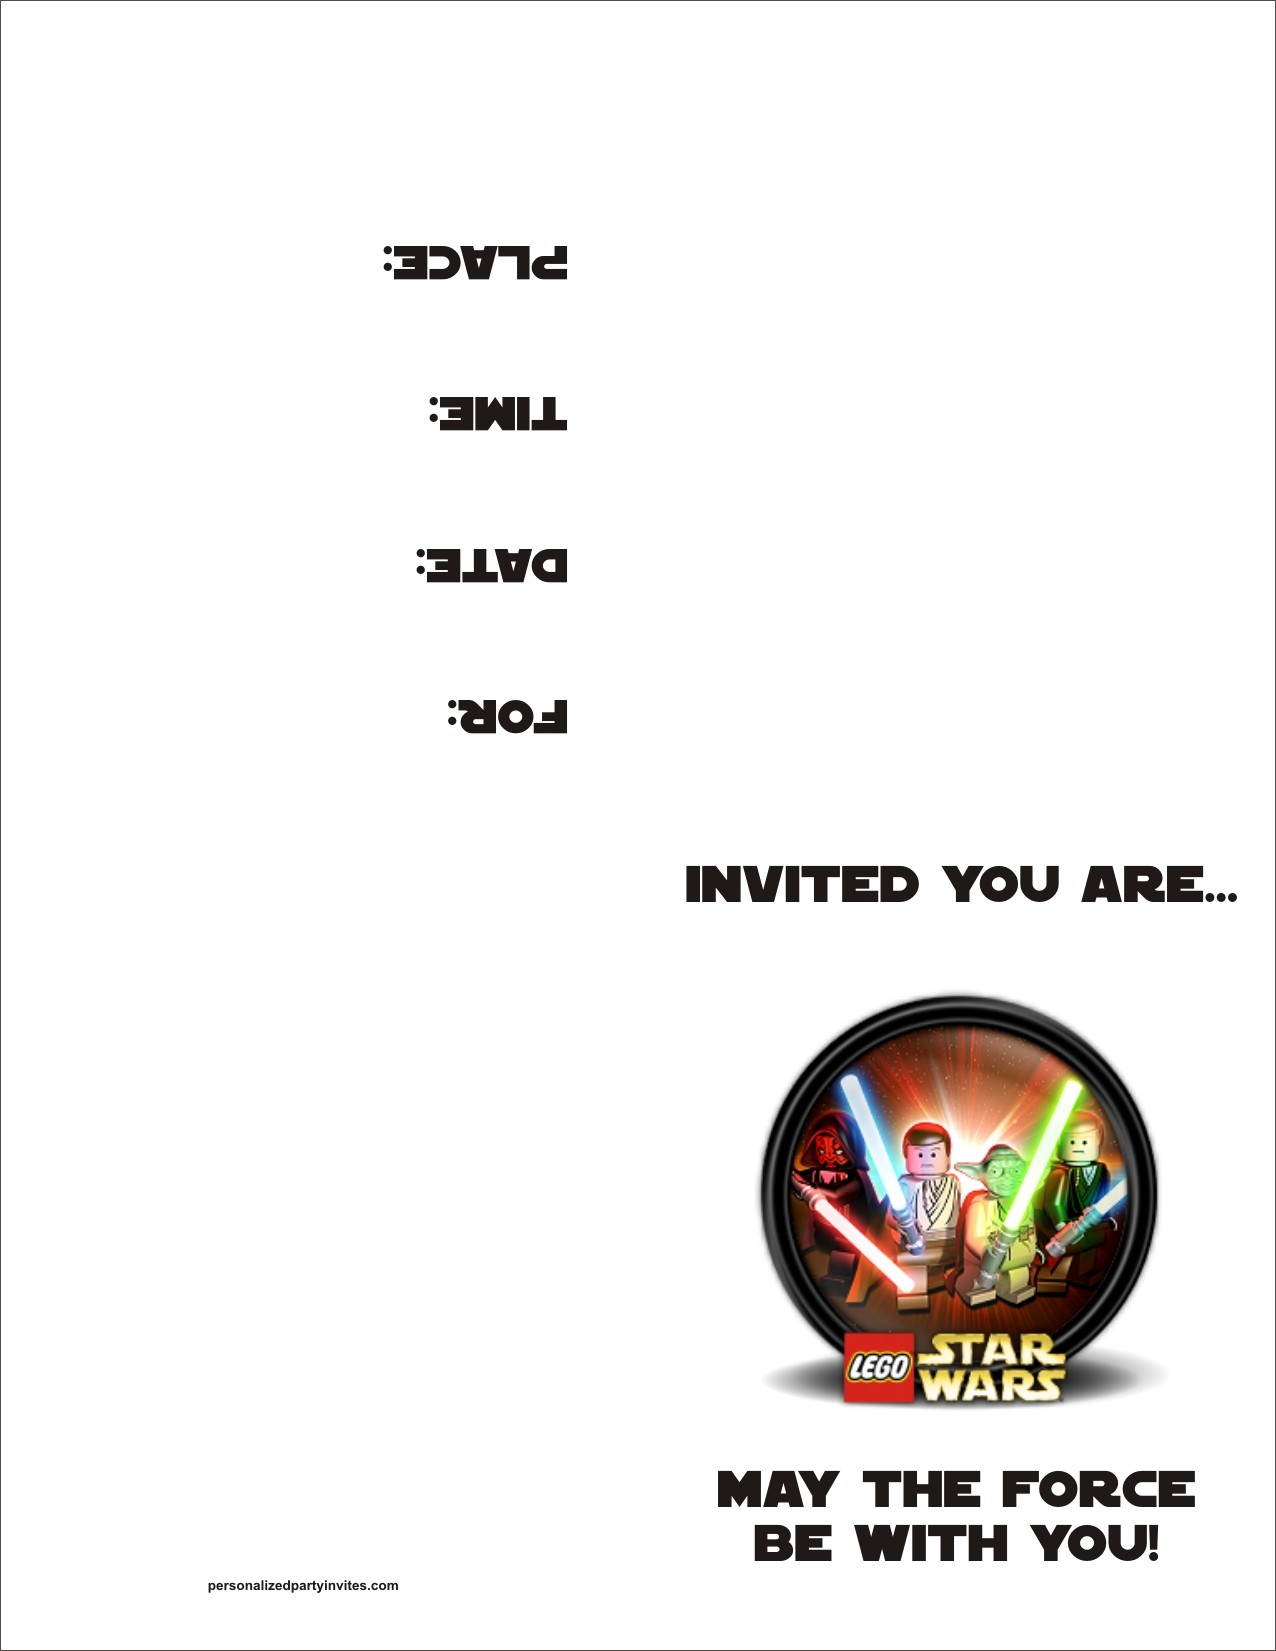 Lego star wars free printable birthday party invitation personalized lego star wars free printable birthday party invitation personalized party invites stopboris Gallery